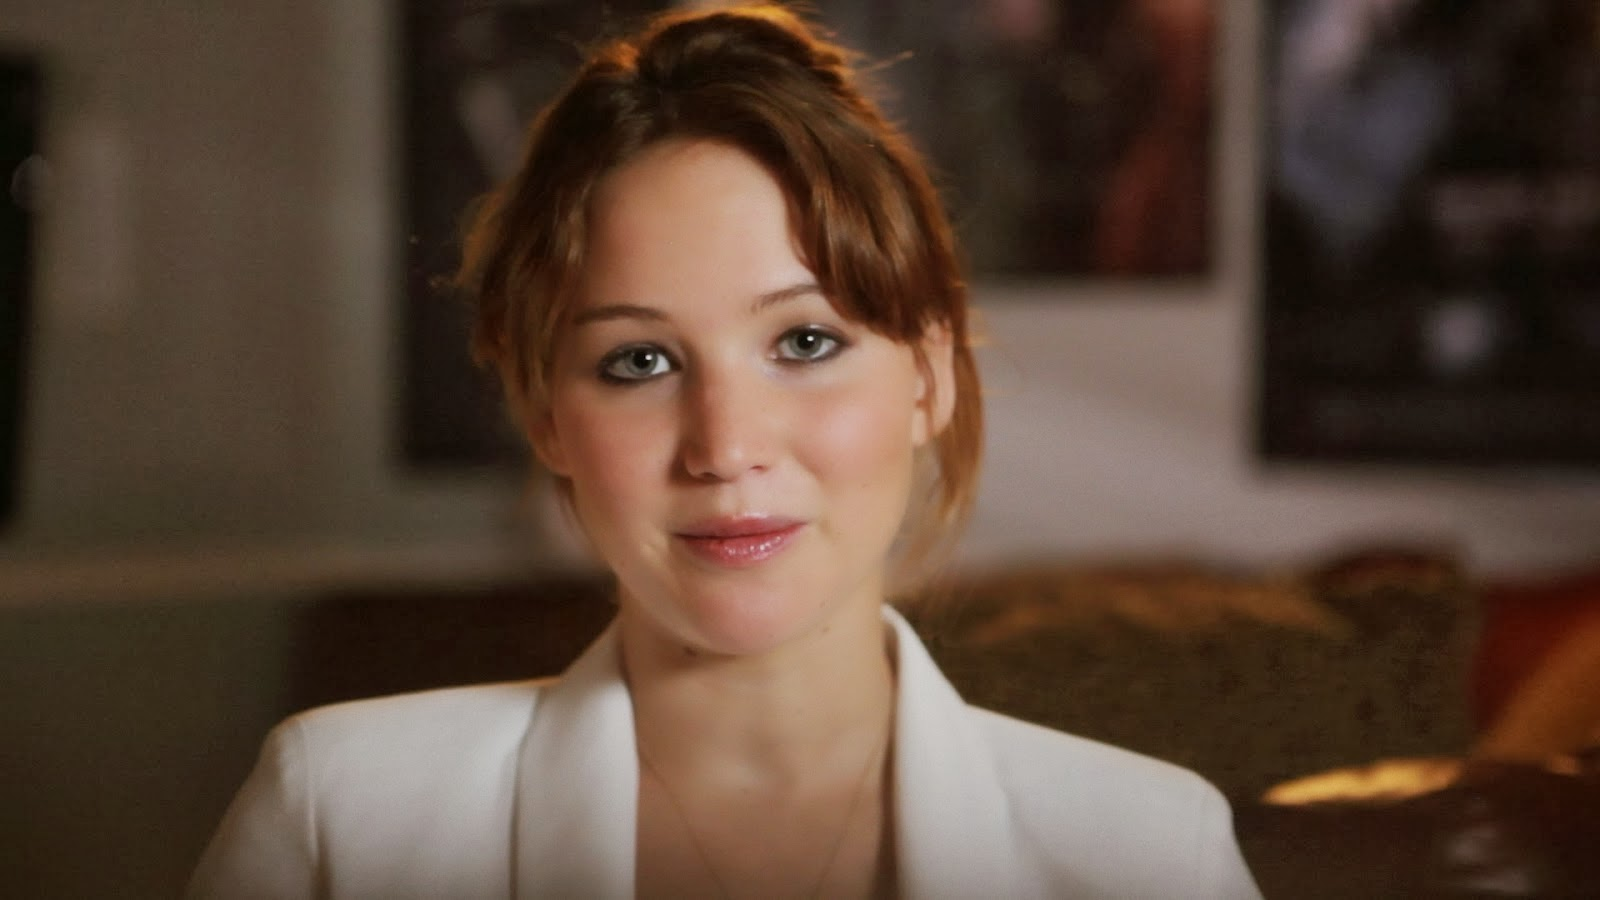 jennifer lawrence hd photo - photo #9